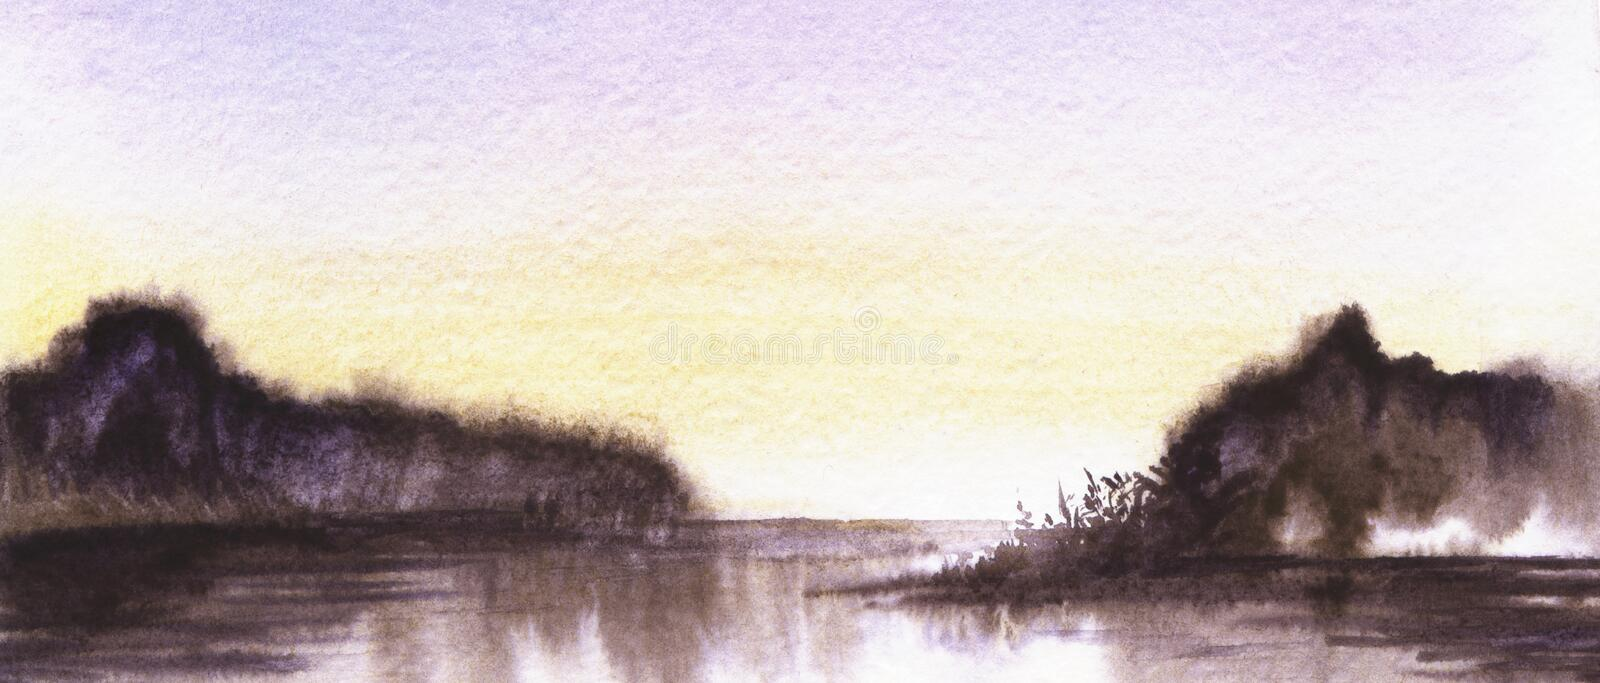 Abstract landscape background. Boundless horizon of dark water with two blurred gloomy land plots beneath dusk sky. Reflecting in smooth surface. Hand drawn by stock illustration